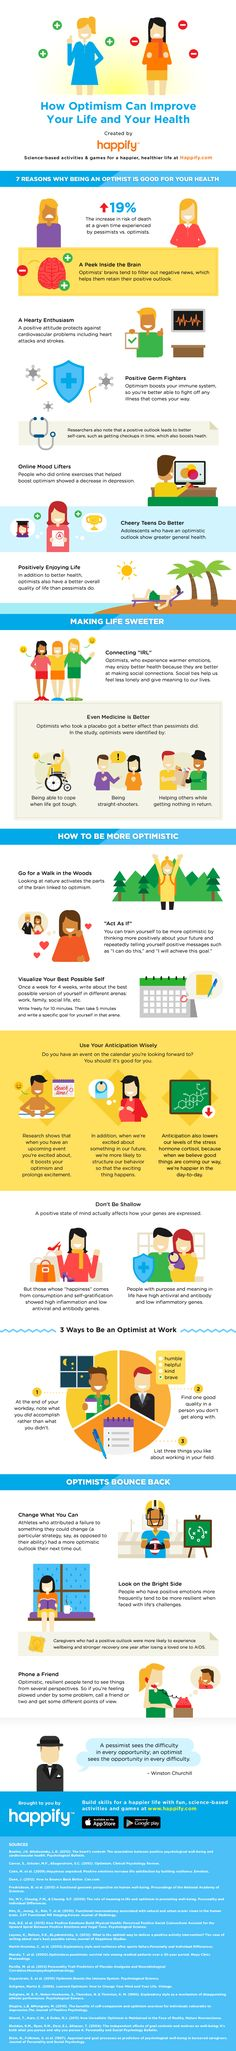 How to Be Happier: Tips & Tricks for Developing an Optimistic Outlook [Infographic], via @HubSpot